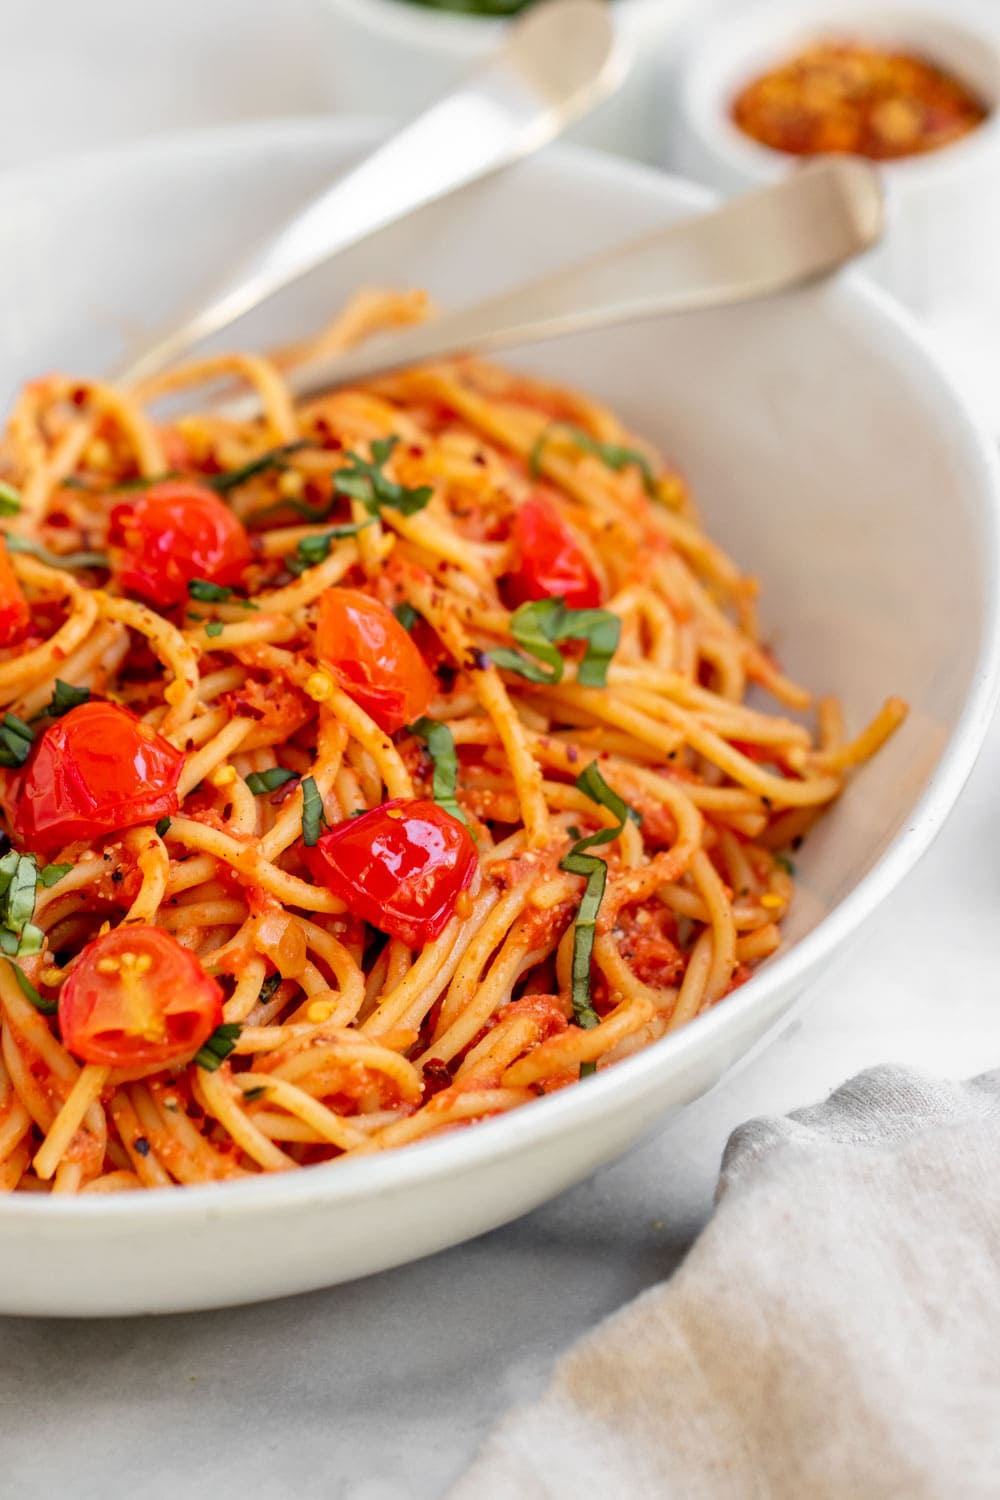 Angled view of pasta pomodoro with fresh tomatoes on top.